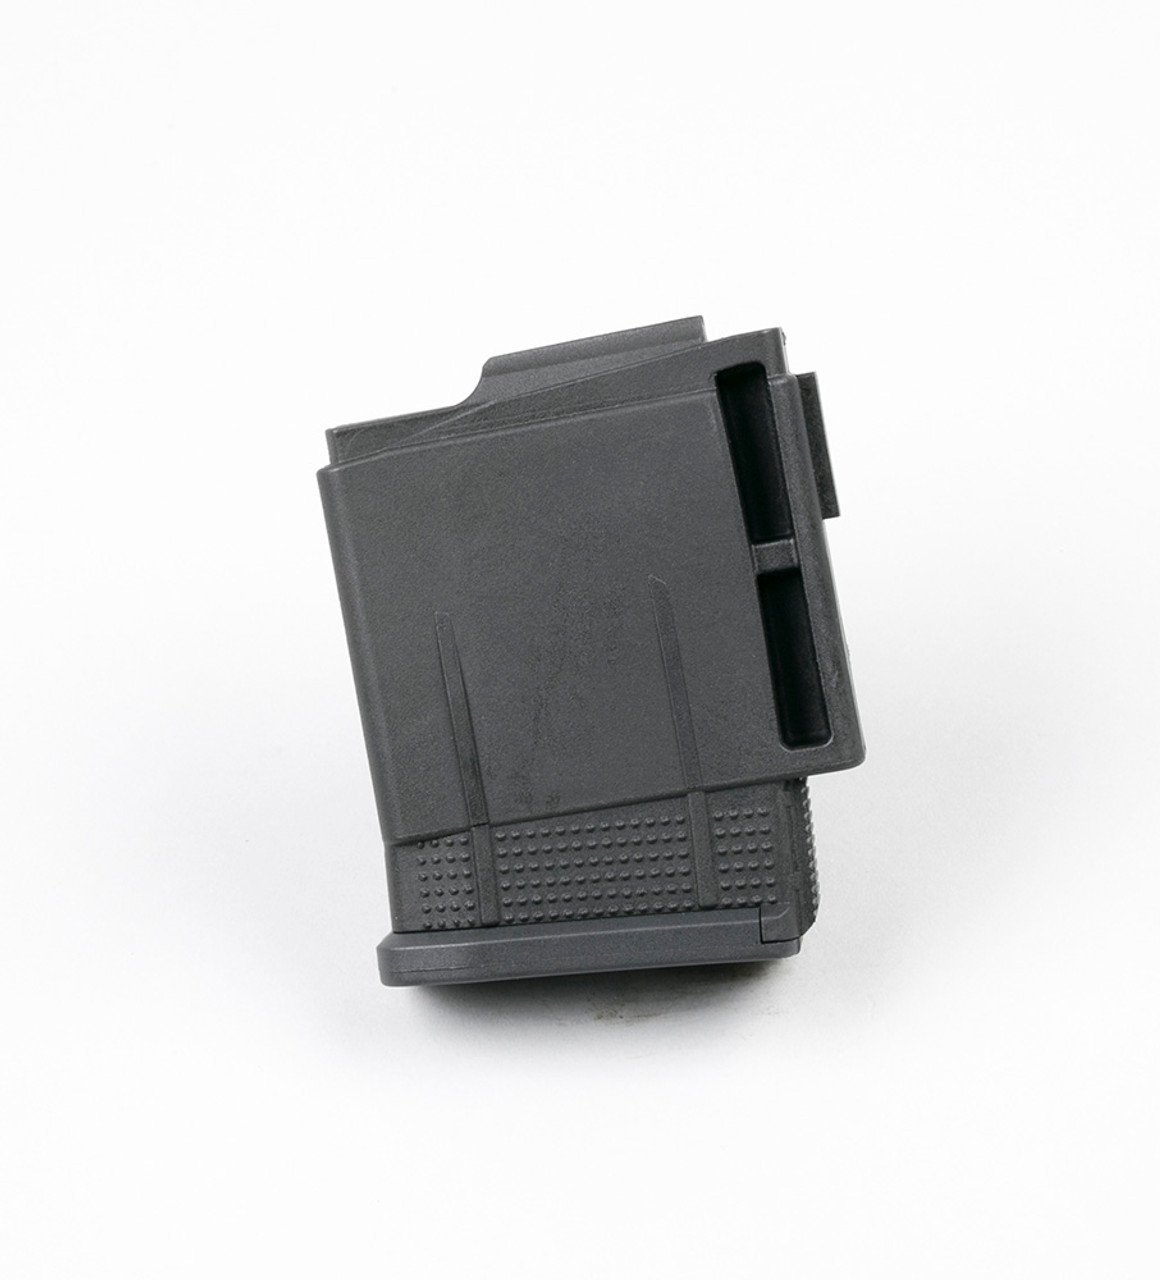 Archangel® .223 / 5.56 TYPE A Magazine for the AA700 and the AA1500 (10) Rd - Black Polymer